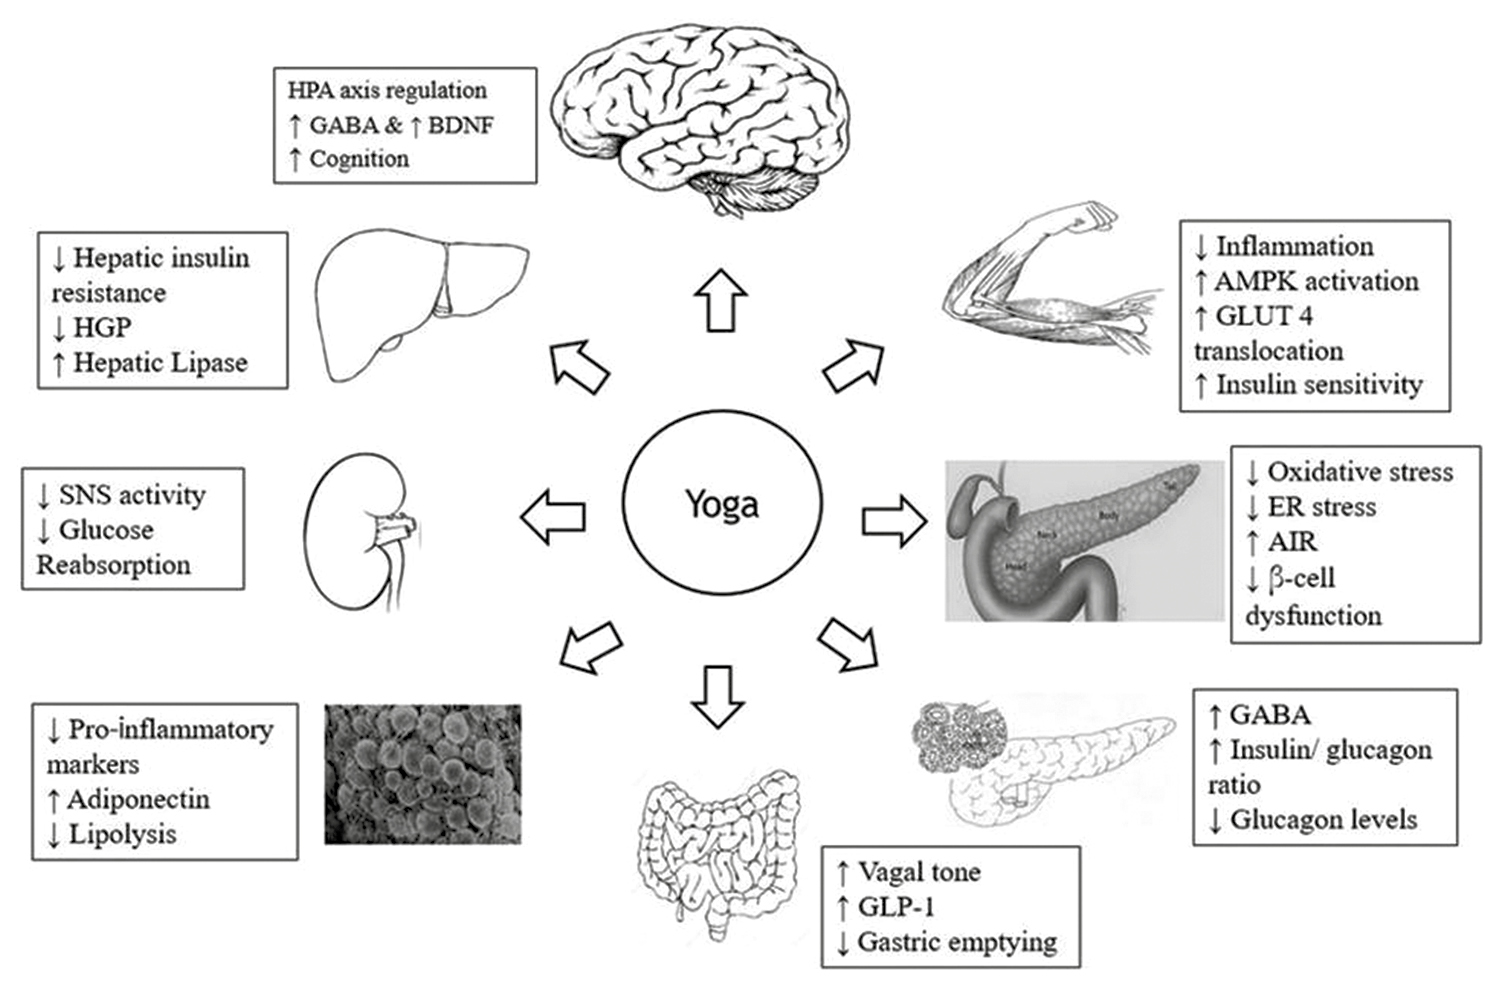 Figure 2: Summary of the hypothesised role of yoga in management of the 'Ominous octet' defects of diabetes (Adapted from Defronzo 2009)